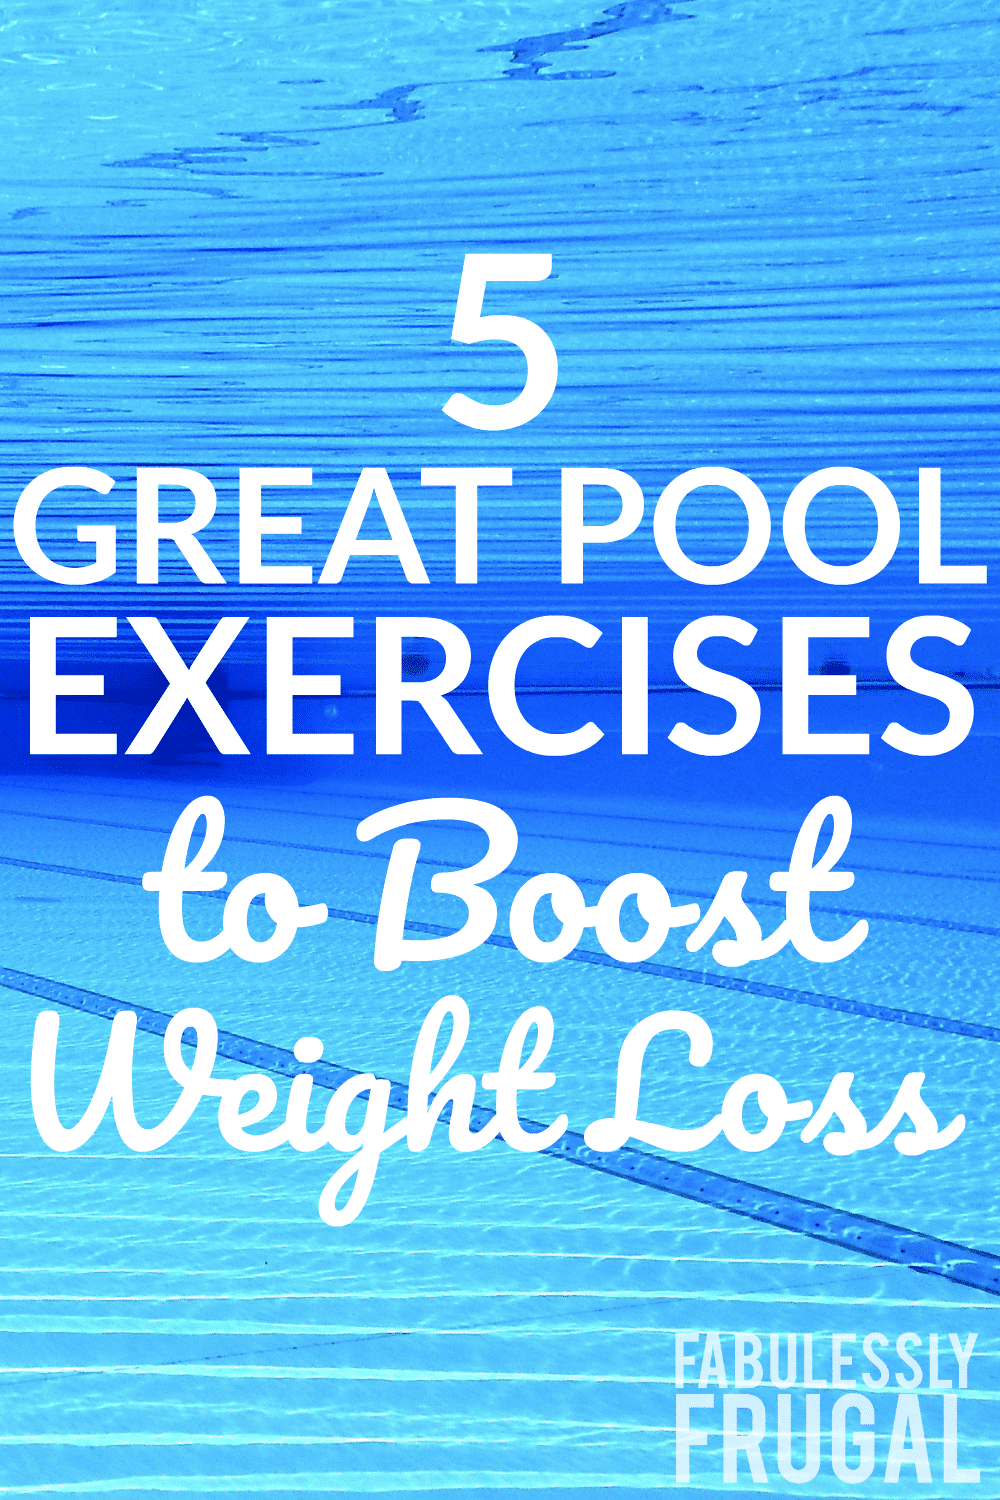 6fef8b3f400 5 Great Swimming Pool Exercises for Weight Loss - Fabulessly Frugal